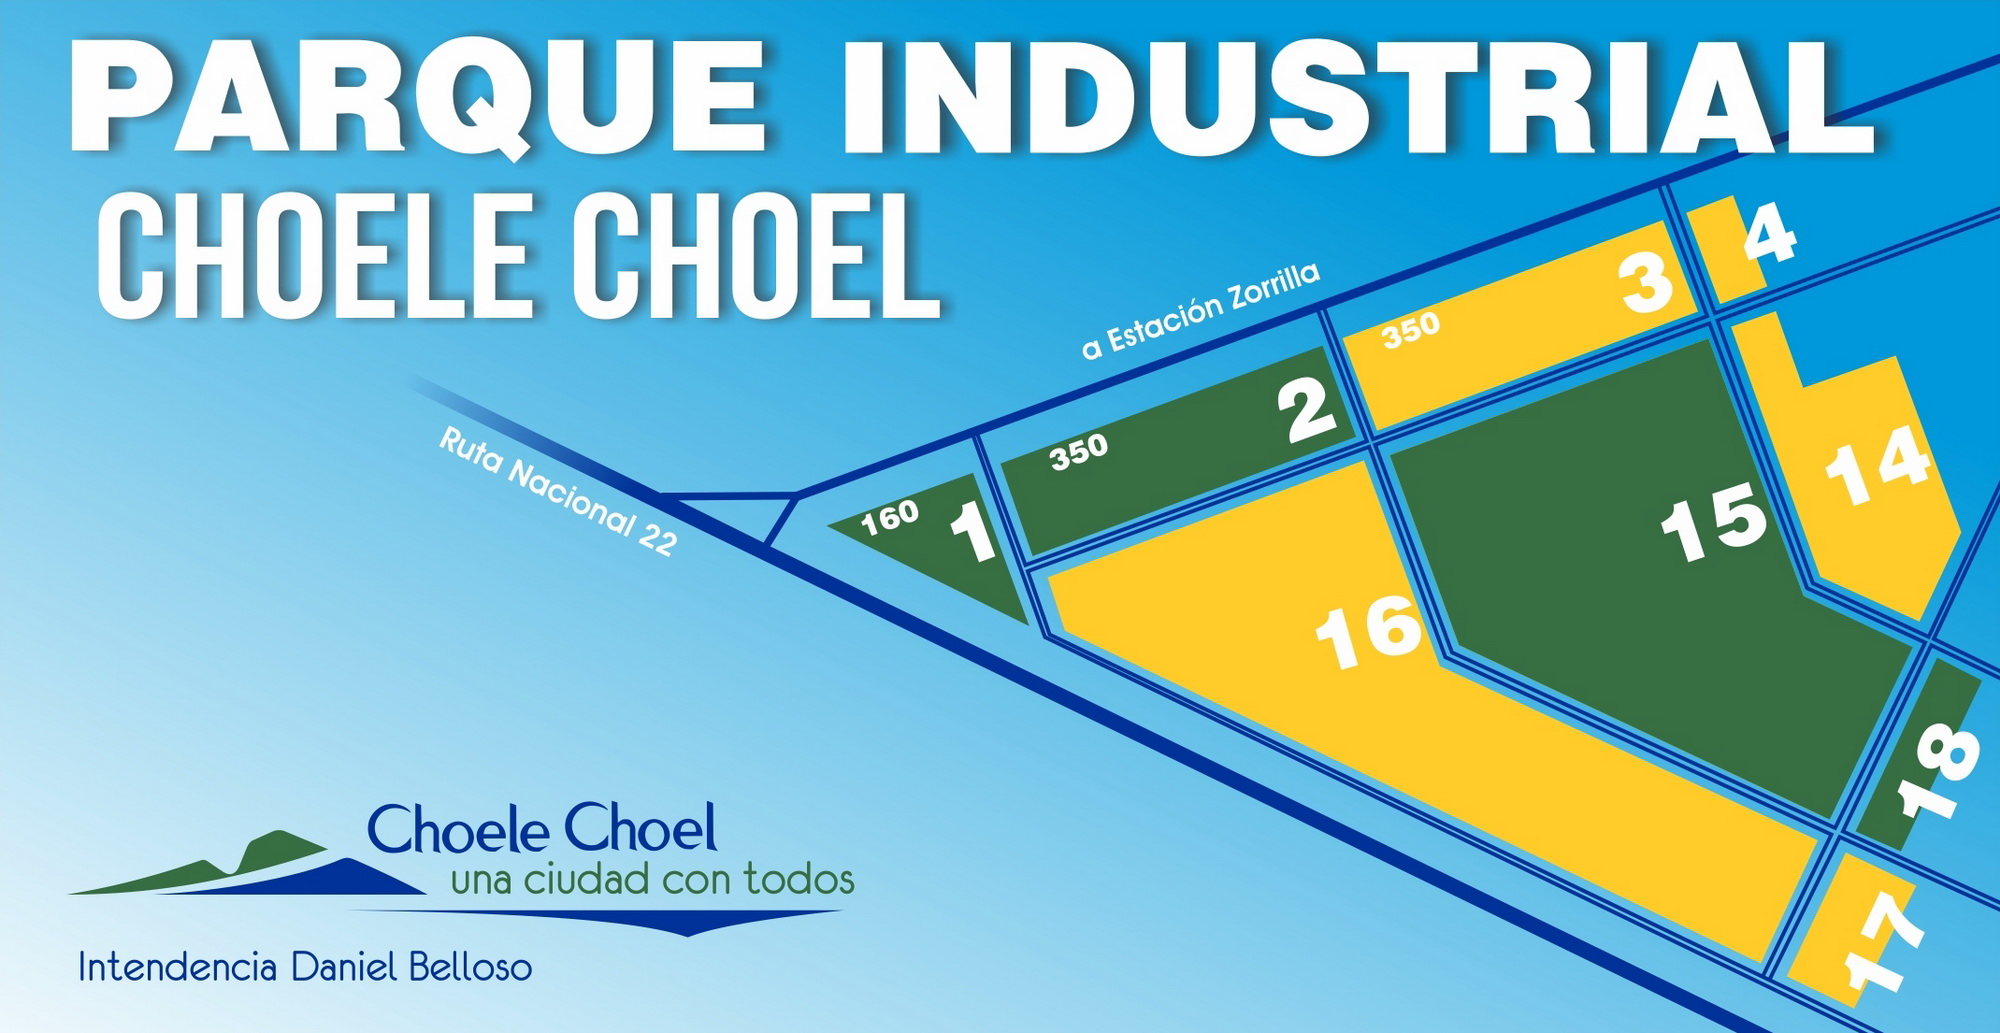 Parque Industrial Choele Choel